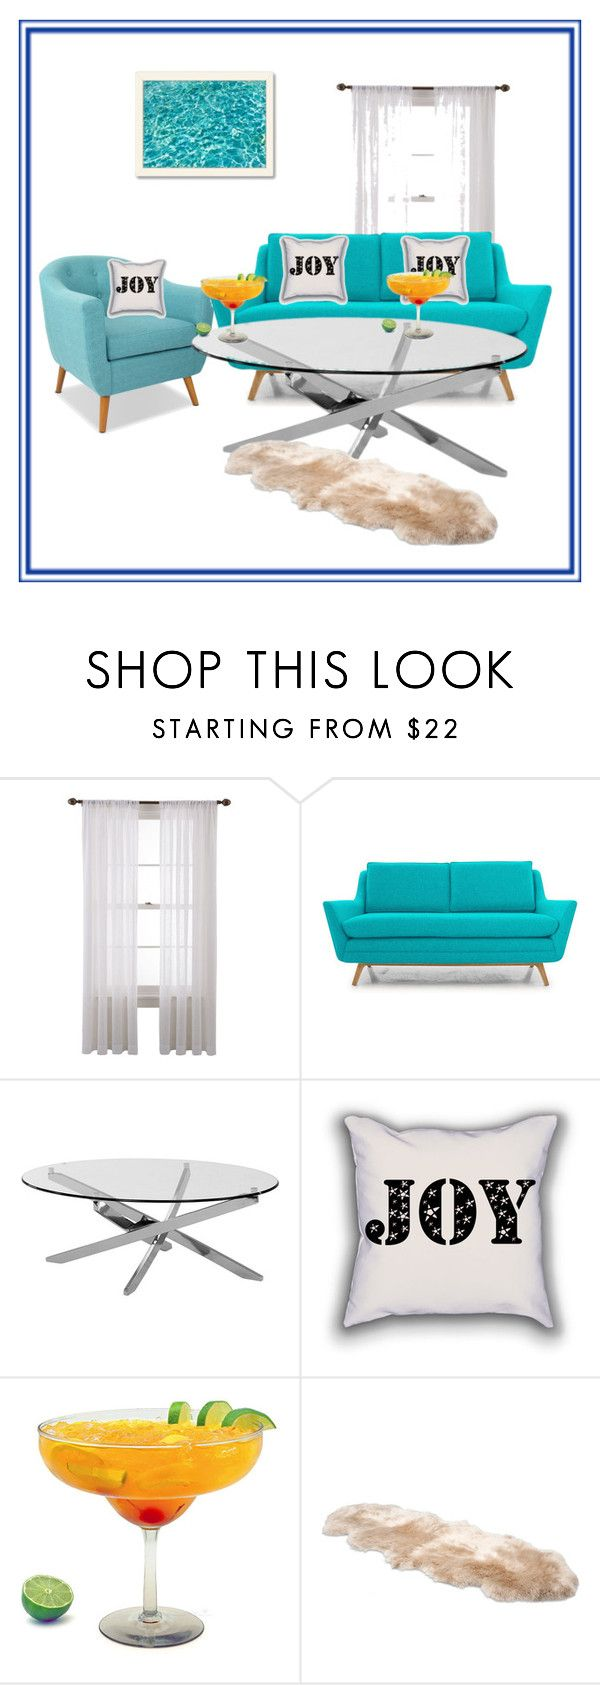 """Untitled #40"" by arijana-cehic ❤ liked on Polyvore featuring interior, interiors, interior design, dom, home decor, interior decorating, Martha Stewart, Joybird Furniture, UGG Australia i Americanflat"